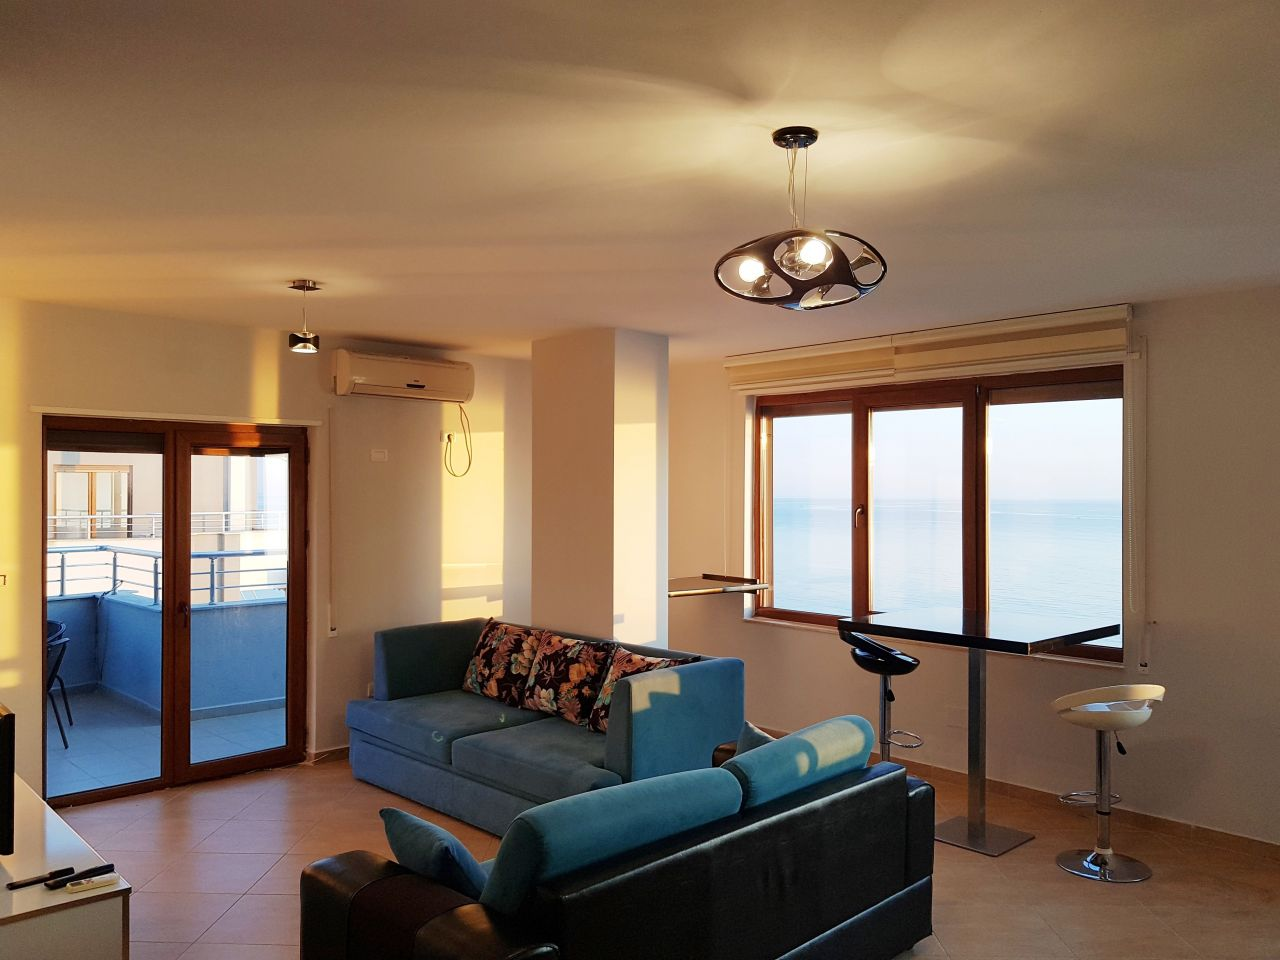 Penthouse For Rent In Durres. Holiday Apartment In Albania